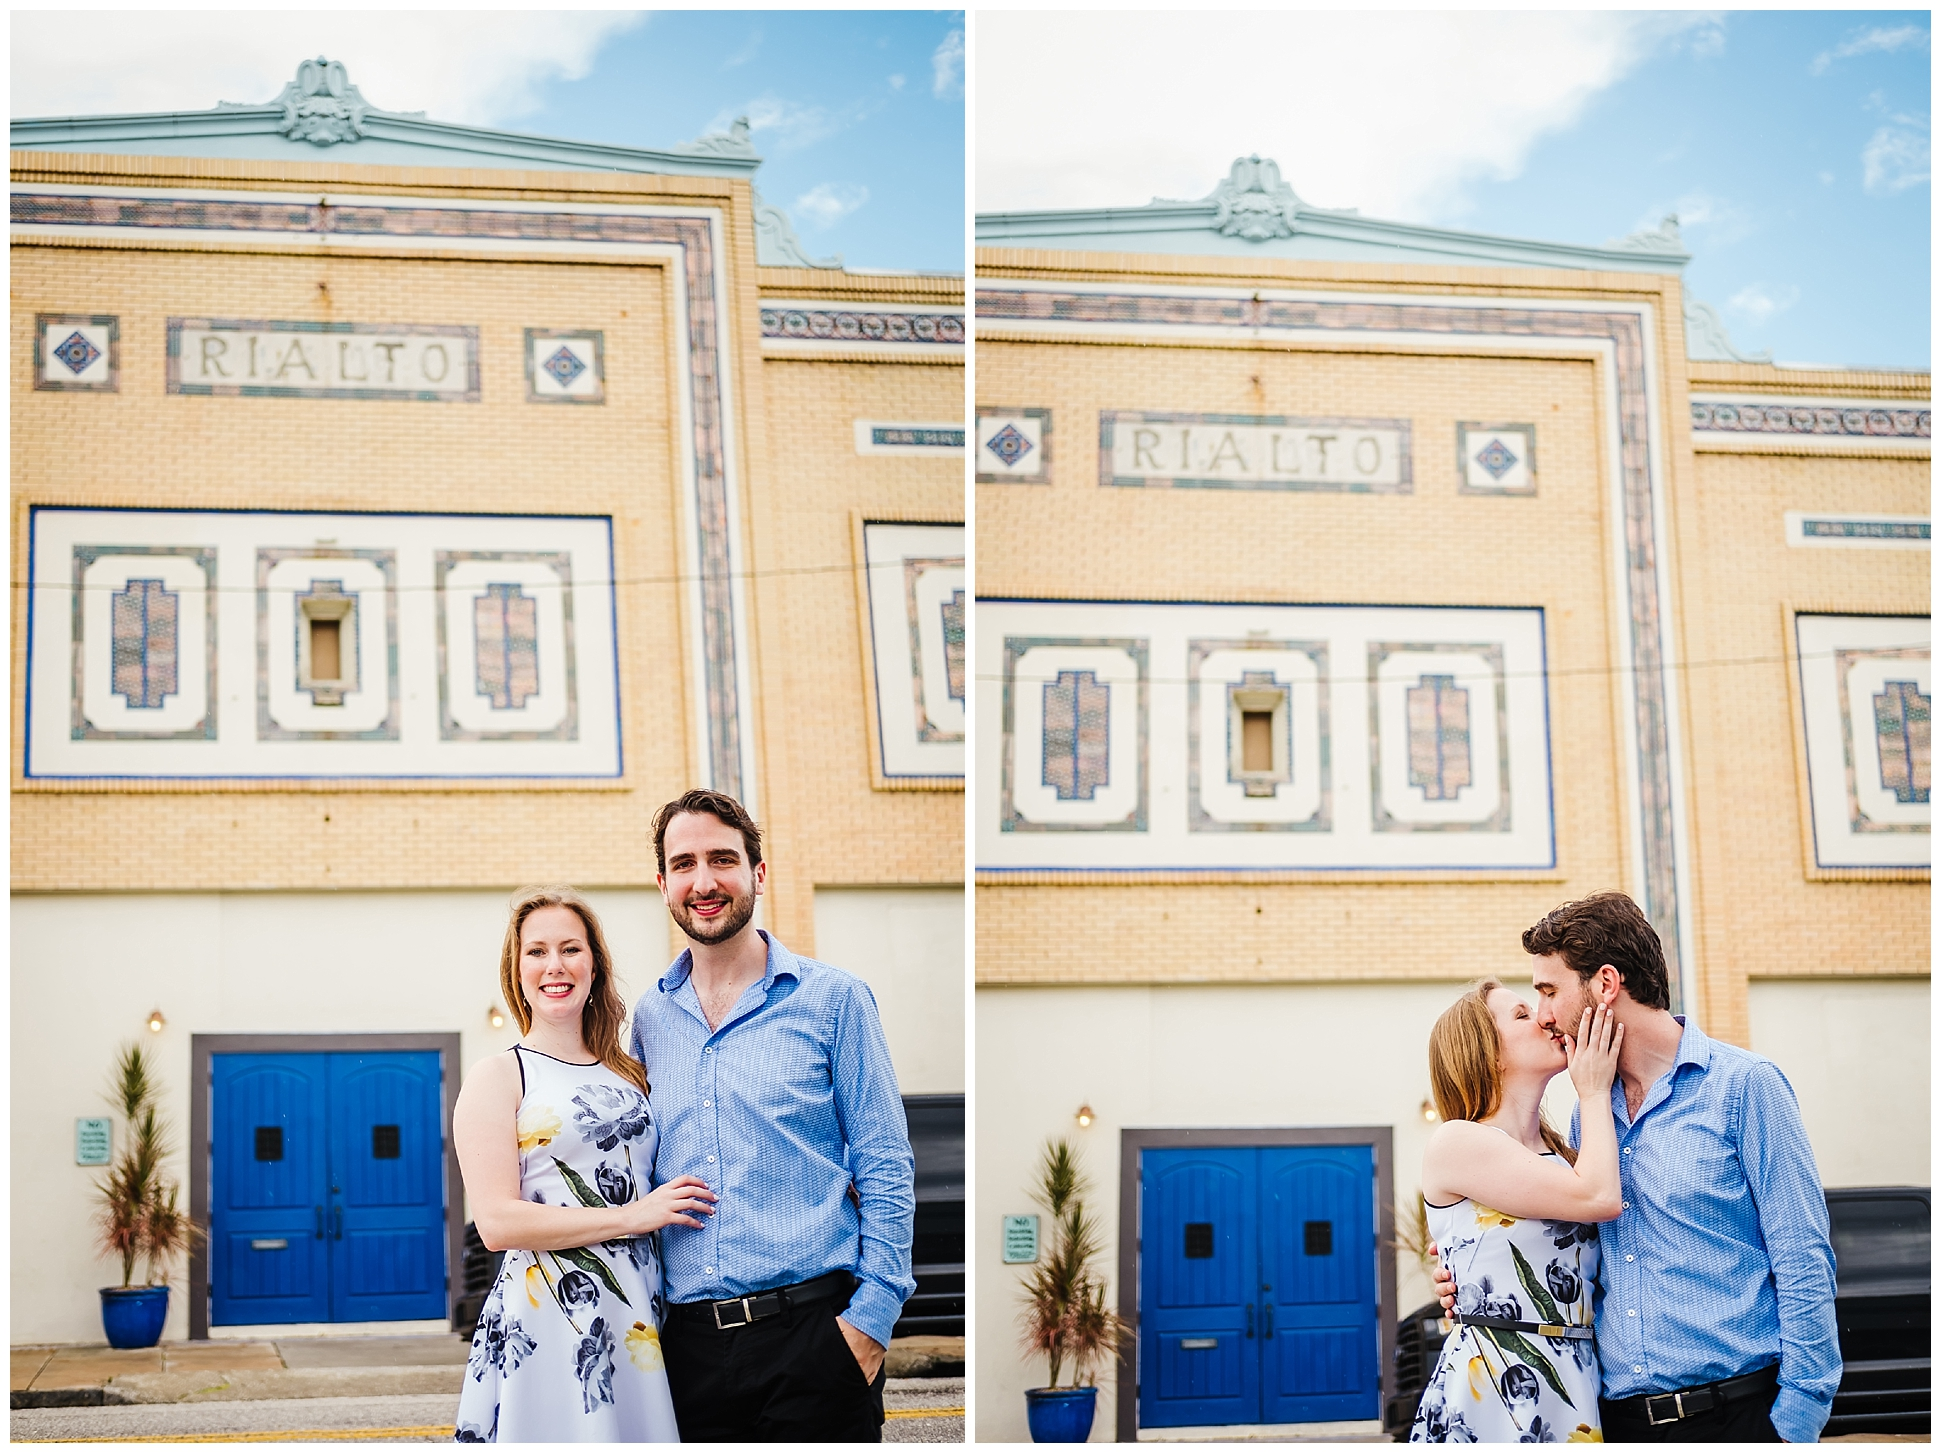 ricky-and-sarah-rialto-theater-engagement_13.jpg